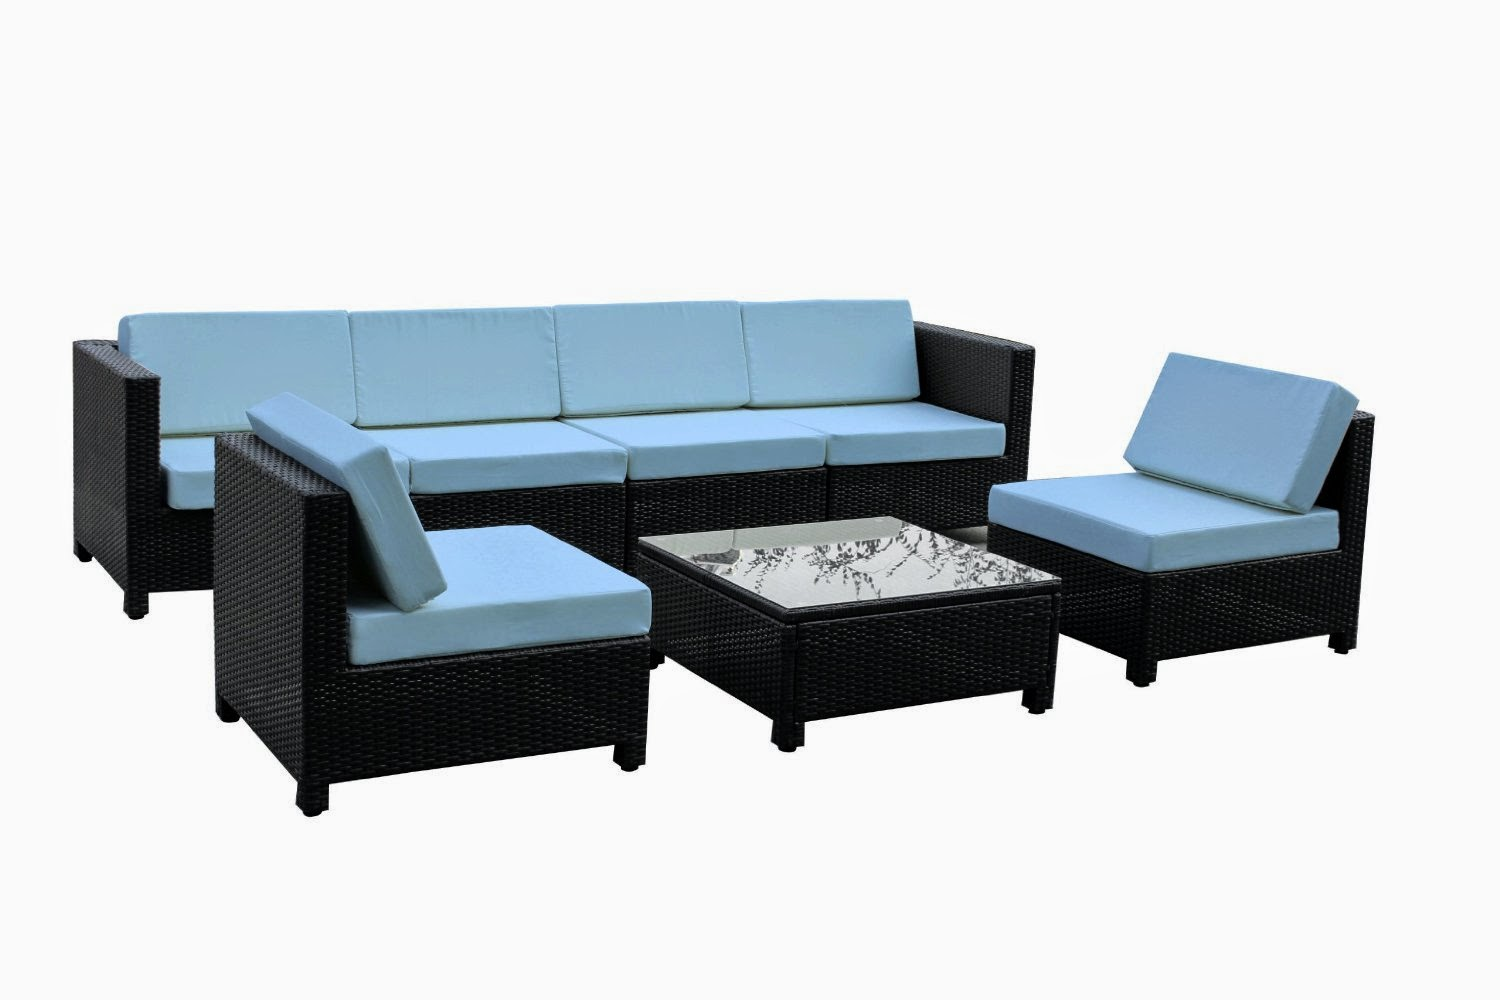 Exacme 7 pcs Luxury Wicker Patio Sectional Indoor Outdoor Sofa Furniture set Light Blue